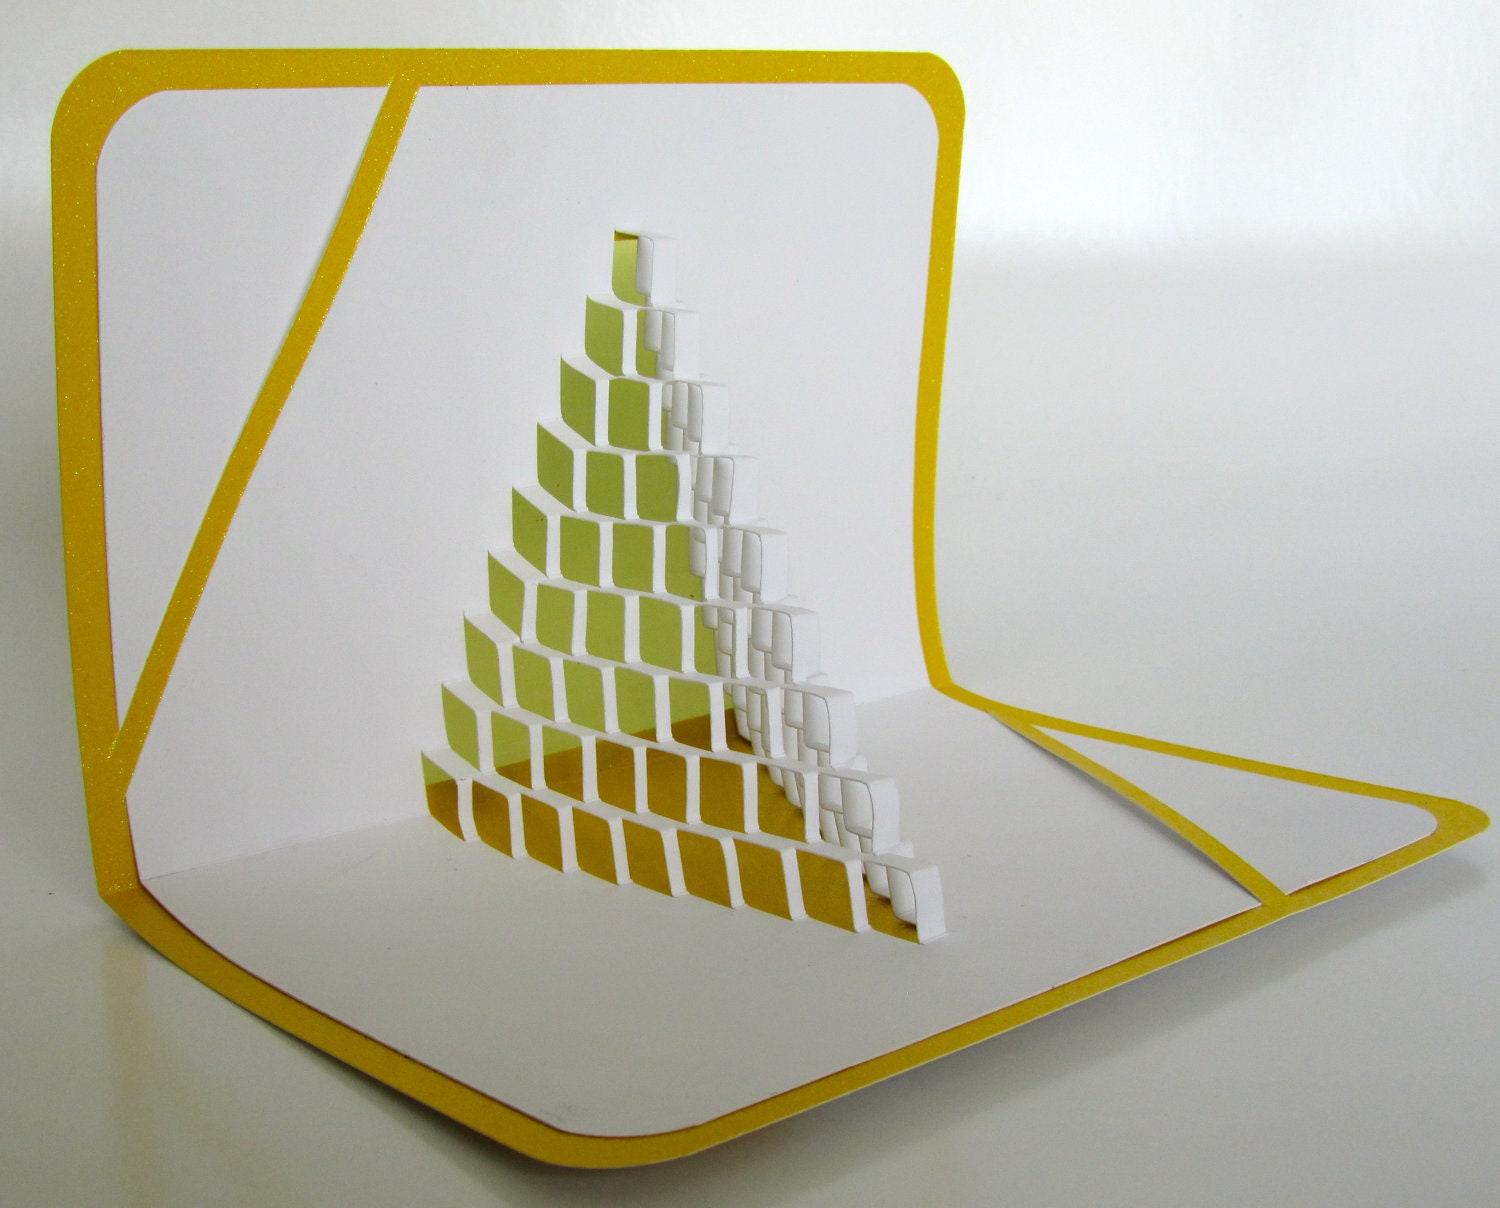 3D Pop Up CARD of STAIRS 2 LOVE Geometric Intricate Cuts of